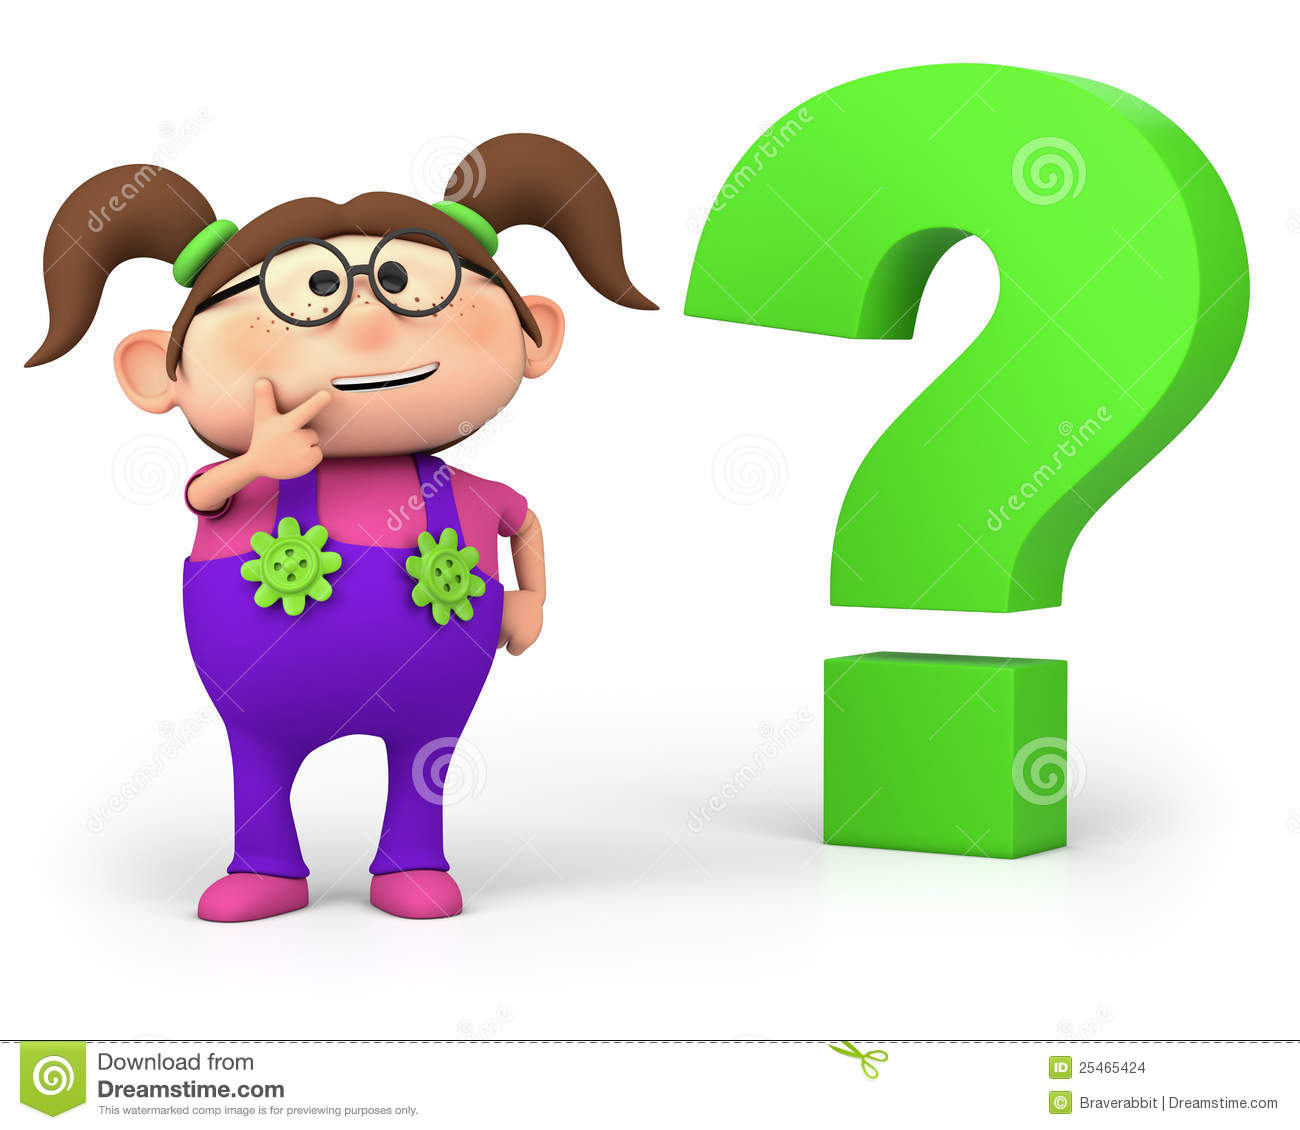 ... little cartoon girl with question mark - high quality 3d illustration